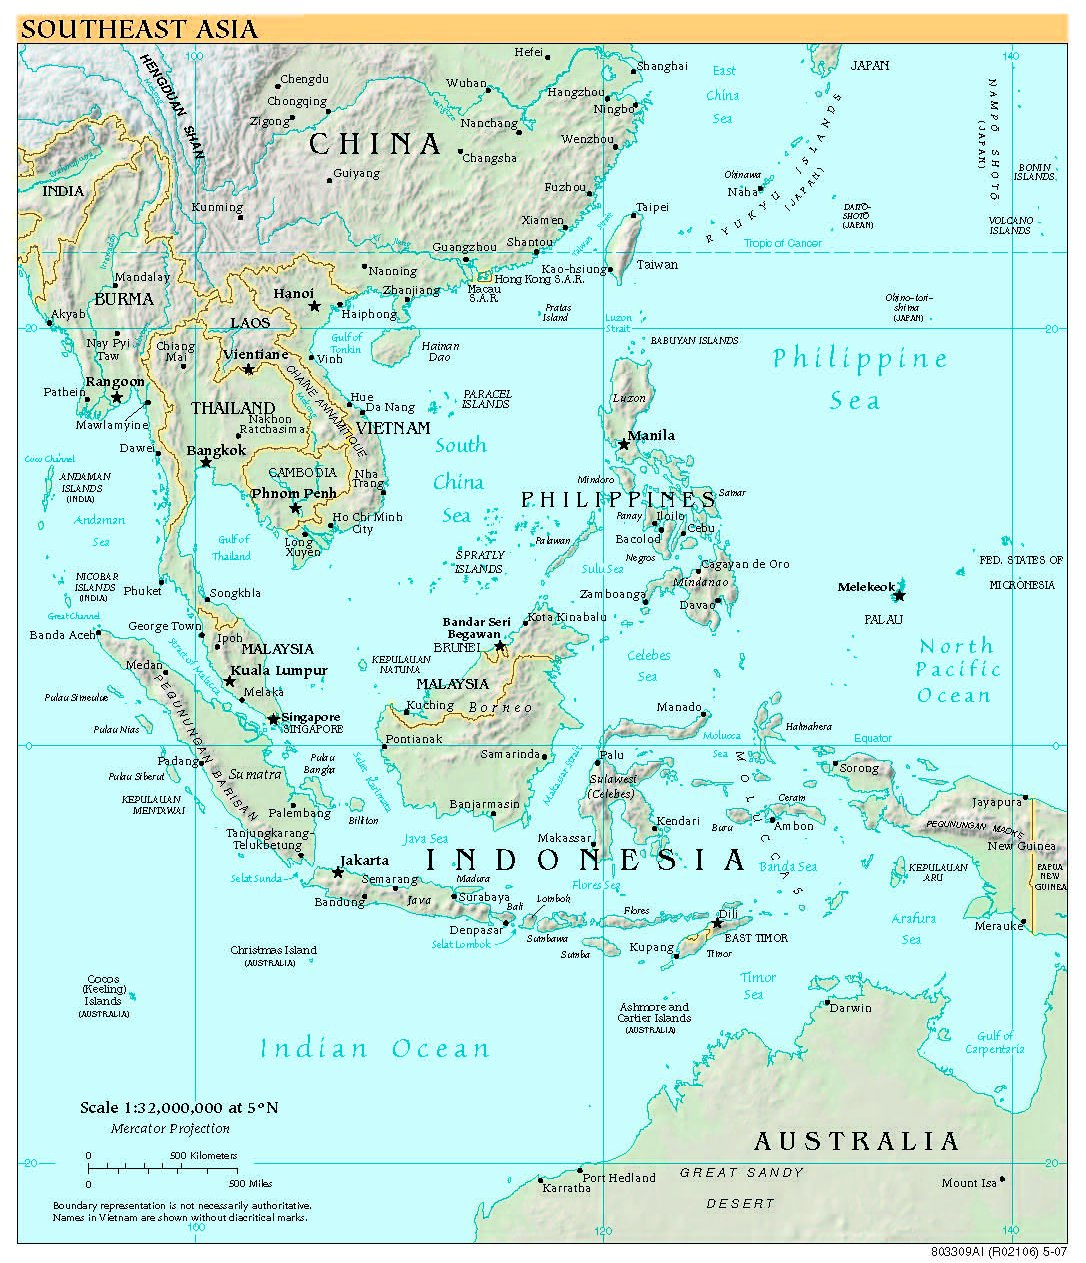 Free High Resolution Map of Southeast Asia